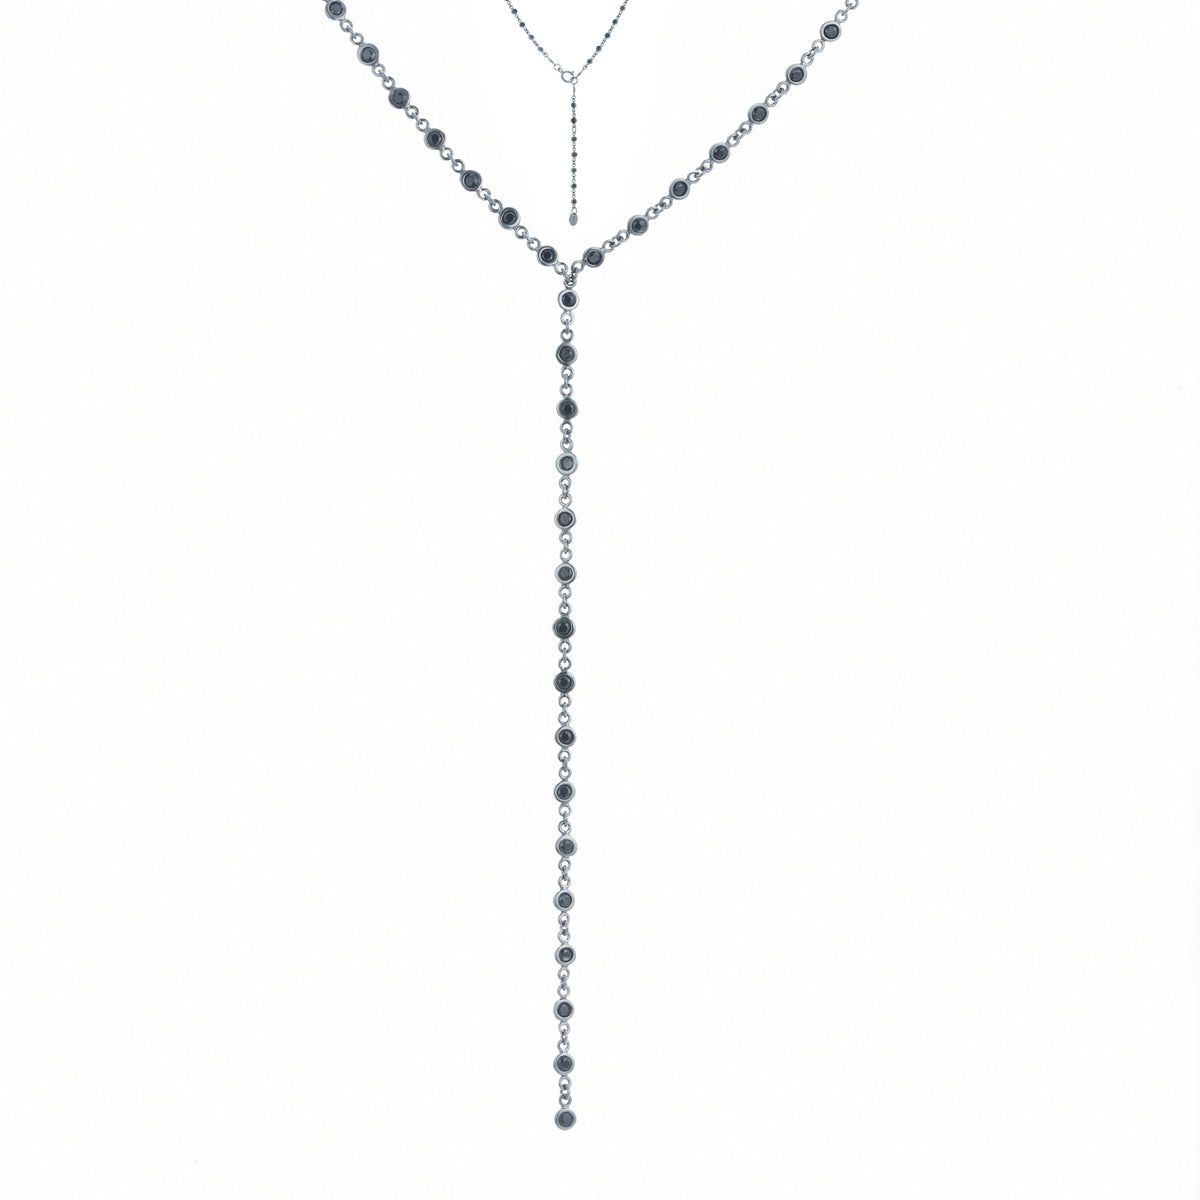 Fortuna | Milan Necklace | 925 Silver | Black CZ | Black Rhodium Plated